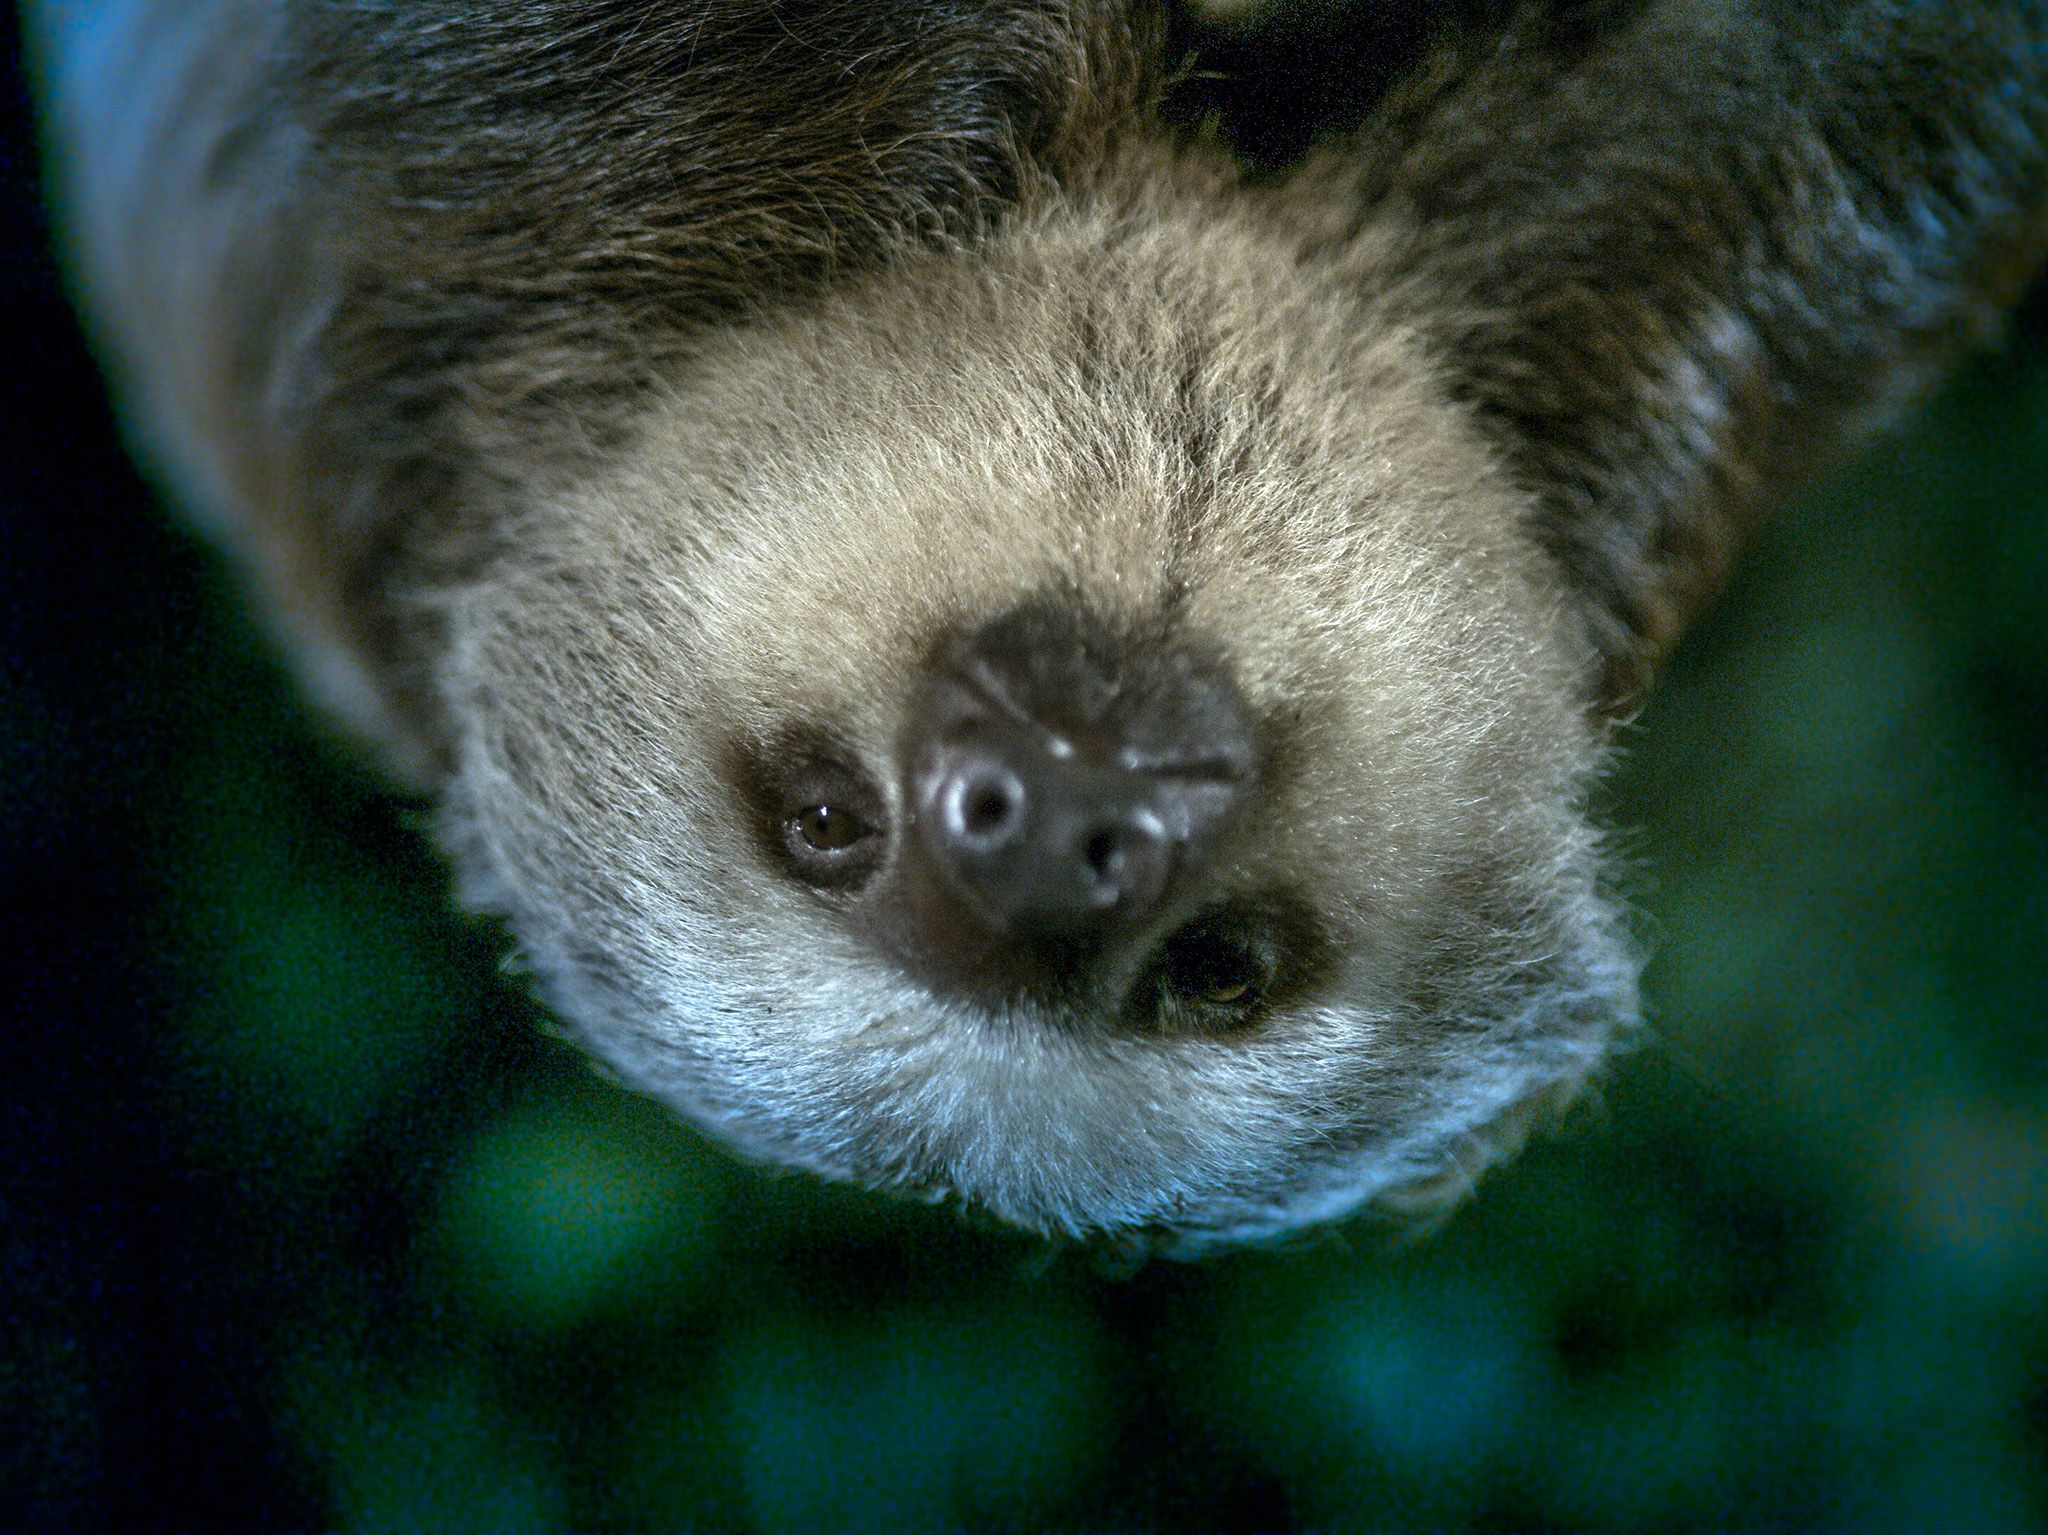 Costa Rica:  A sloth in a tree.  This image is from Dead by Dawn. [Foto del giorno - marzo 2019]